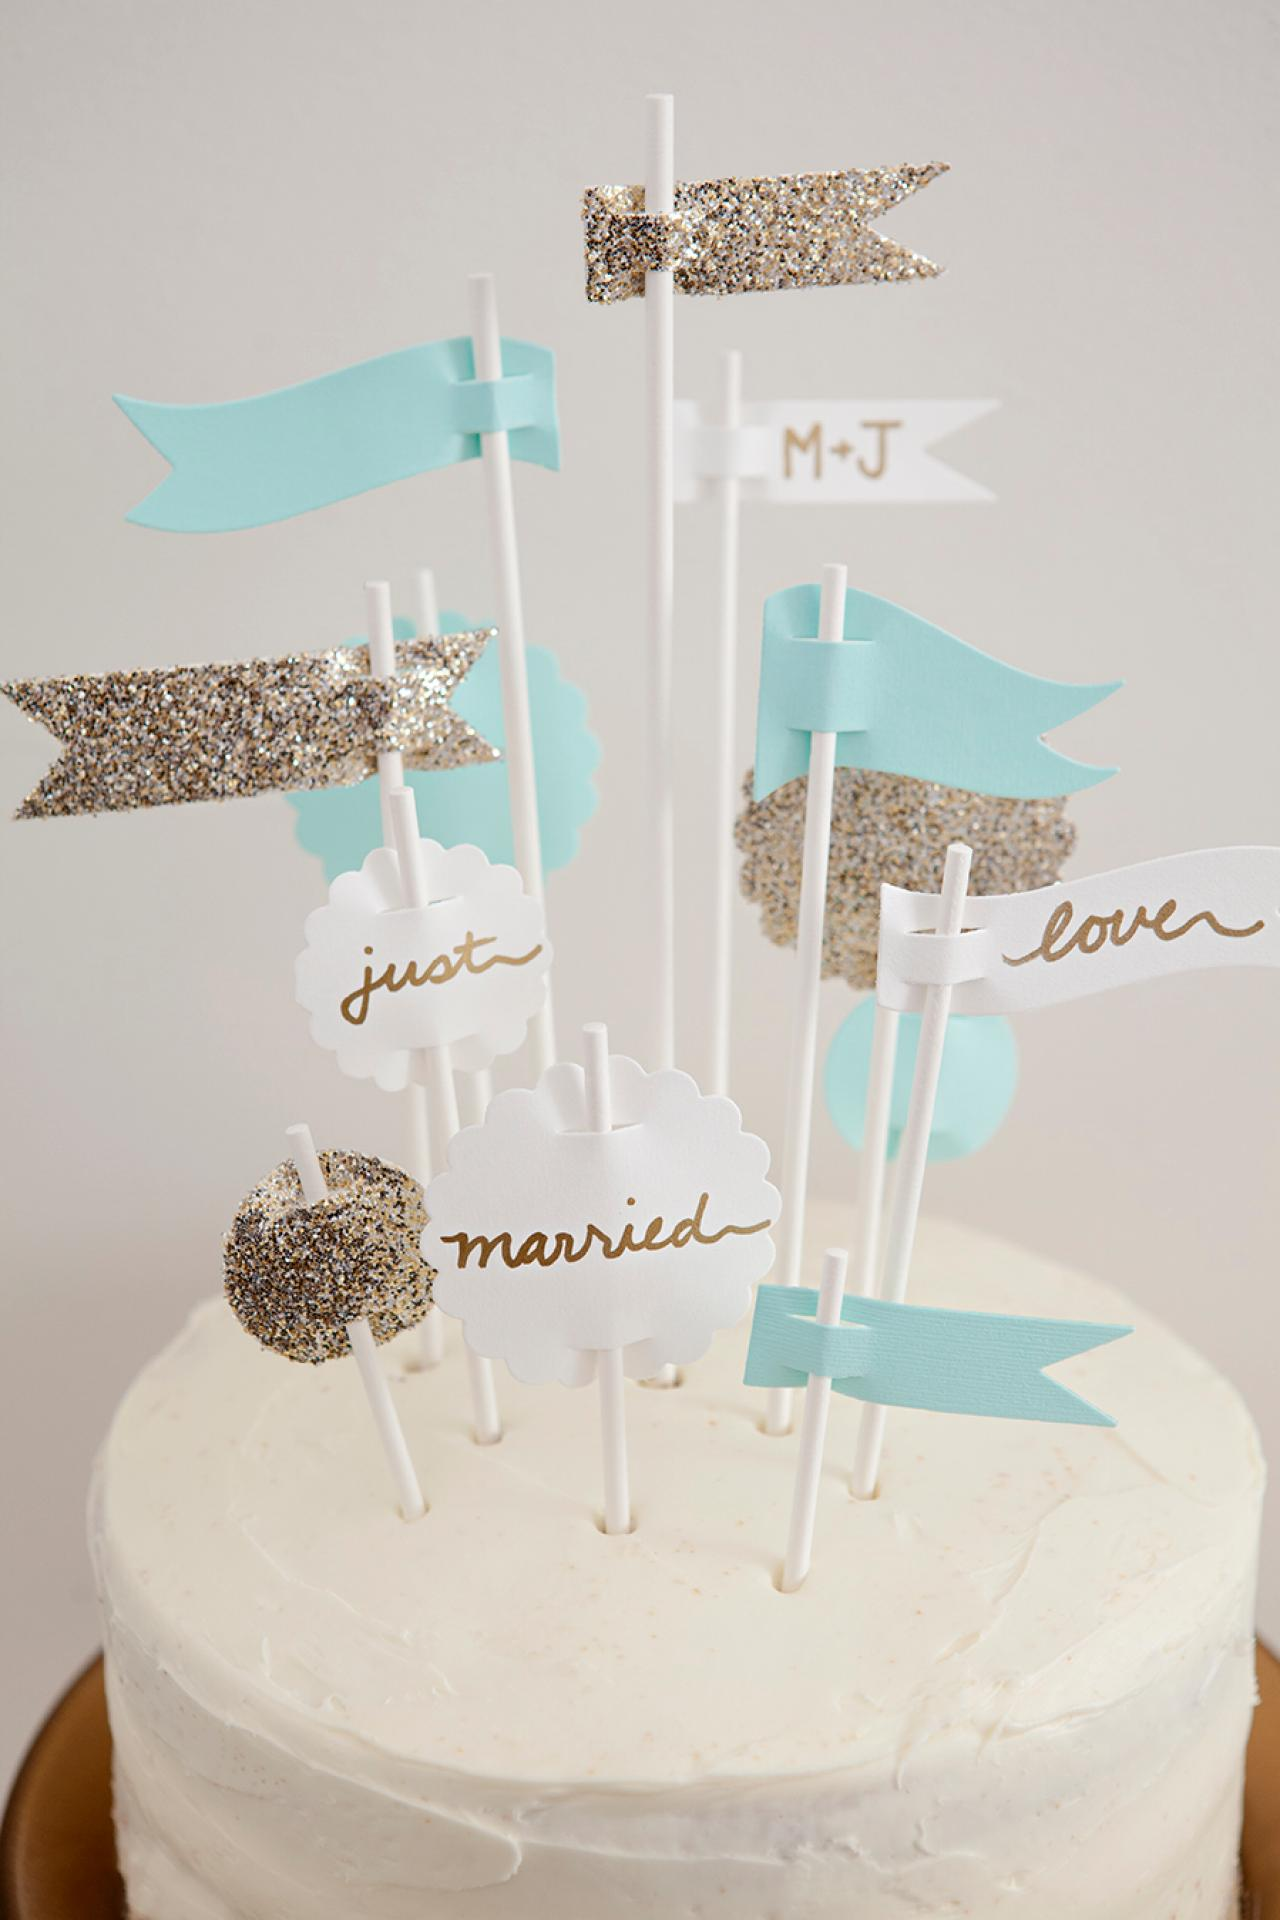 DIY Weddings: Cake Topper Ideas and Projects ...